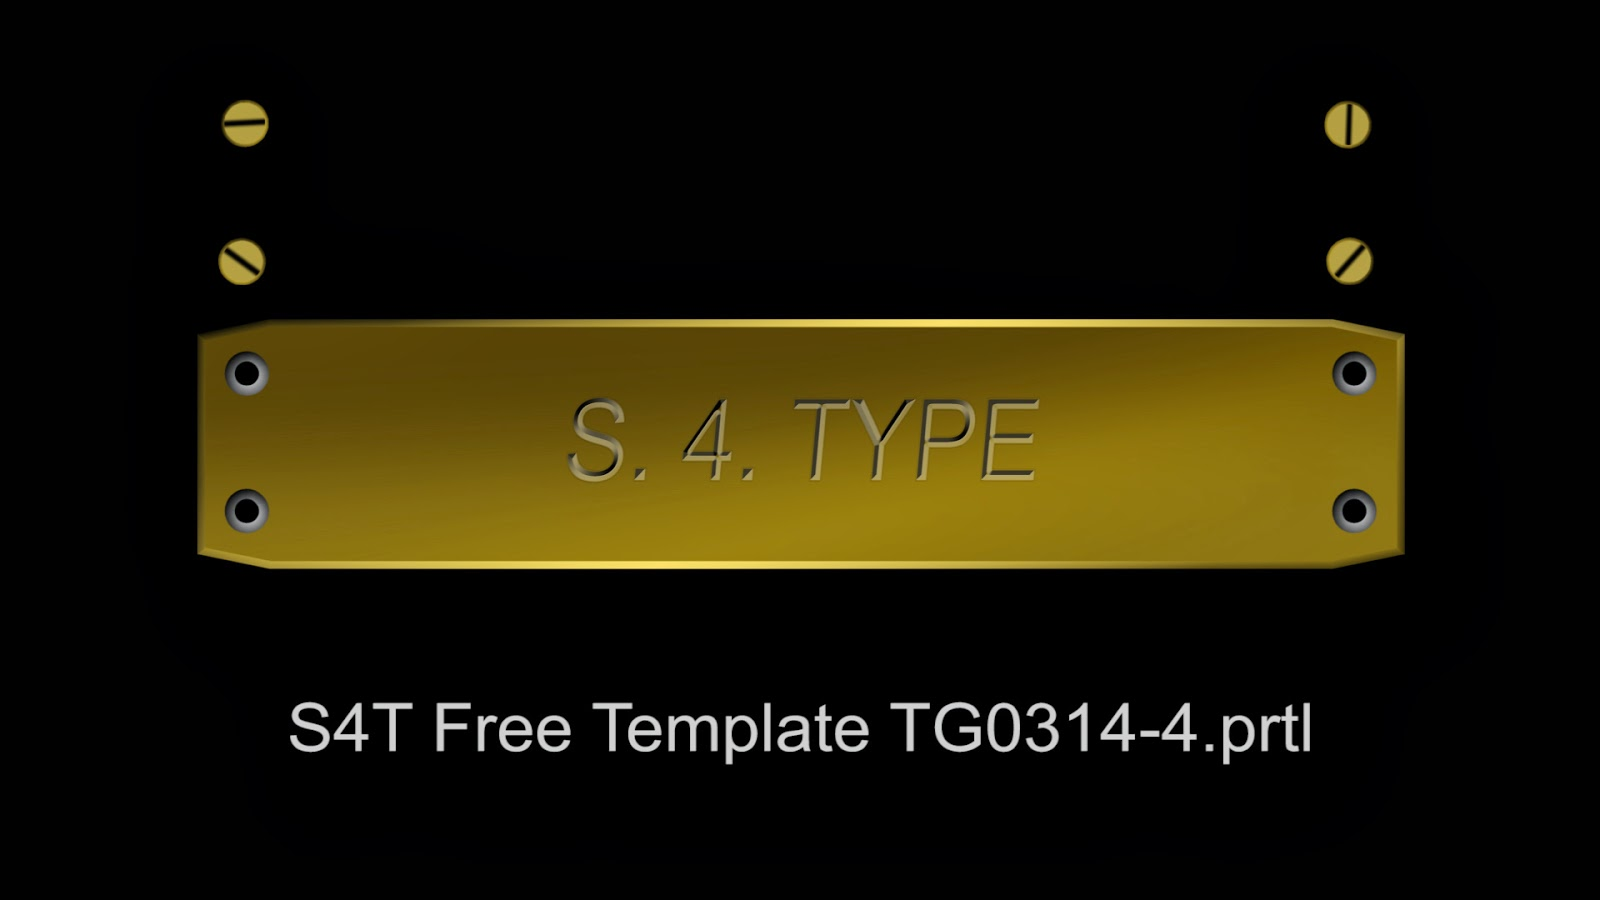 Style4type free s4t premiere pro title template engraved brass plate for Premiere pro title templates free